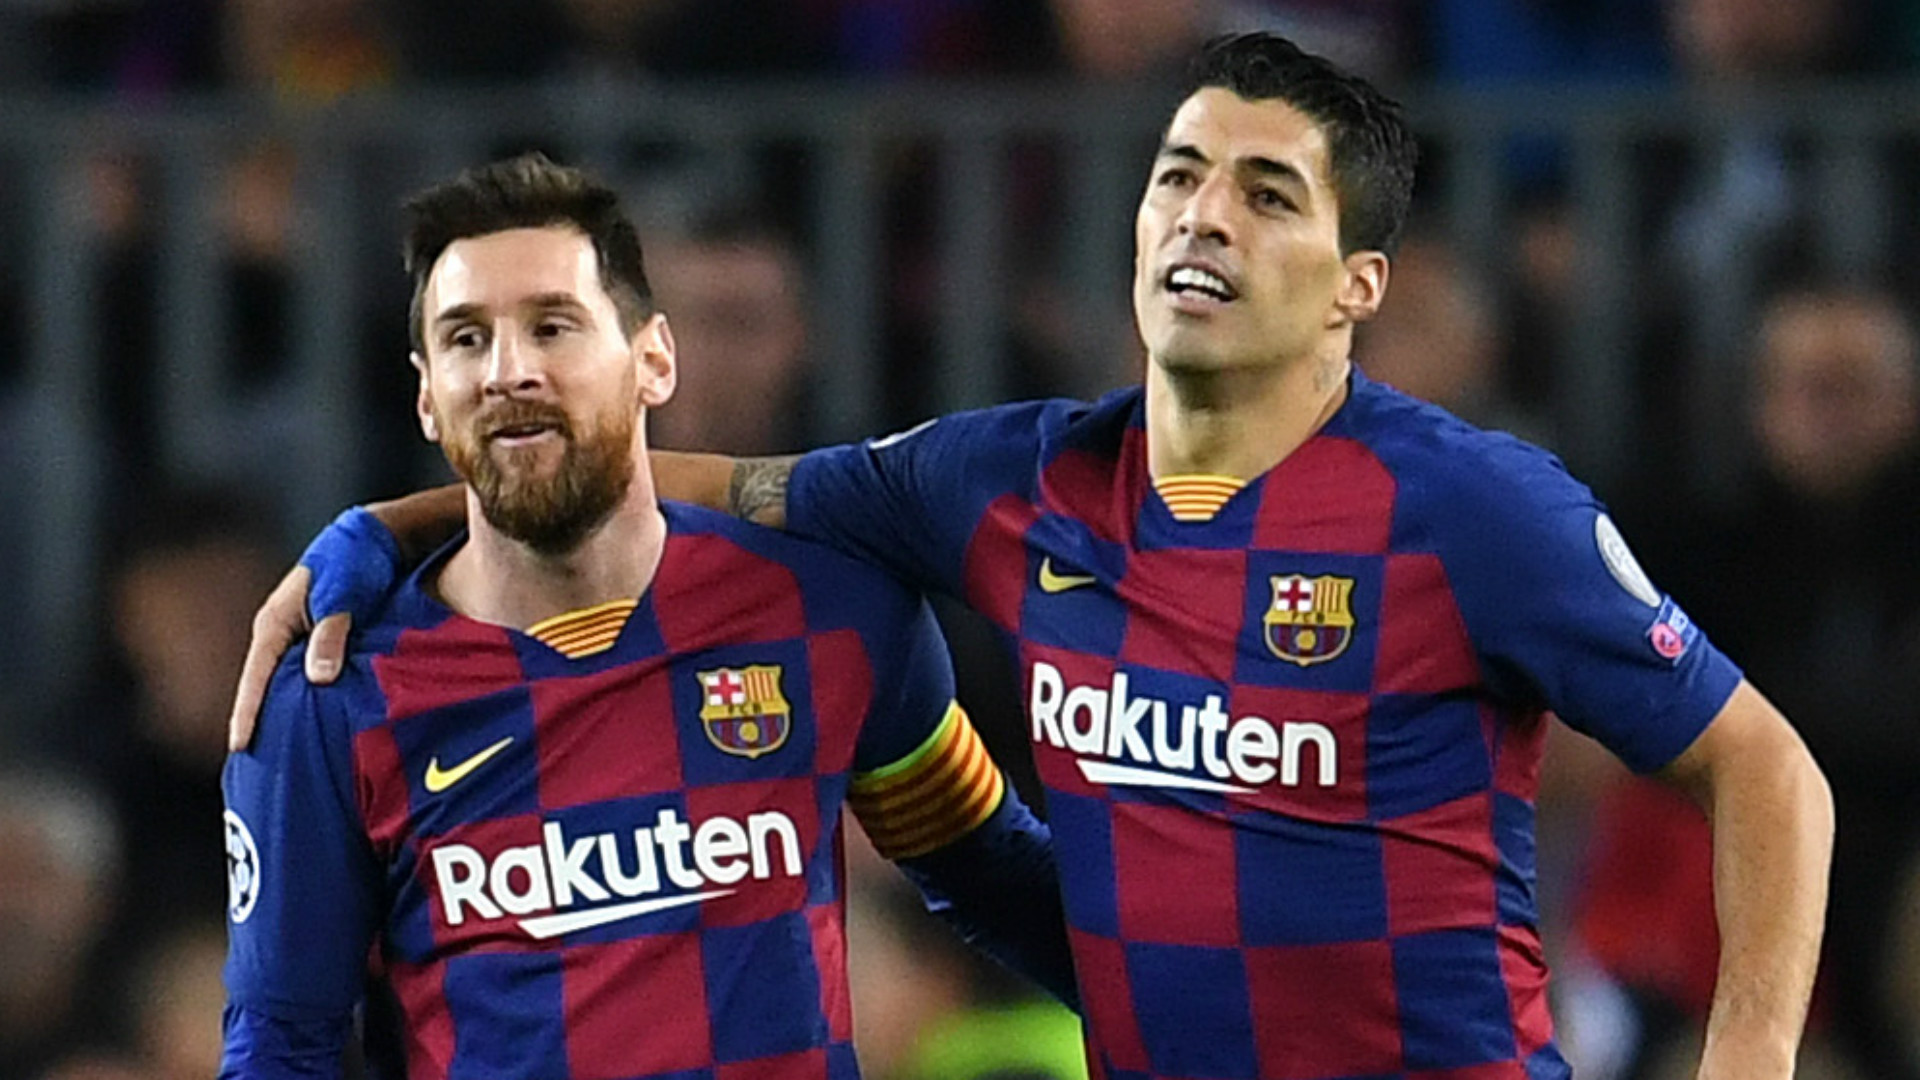 'I felt Messi's pain' - Suarez opens up on disappointing Barcelona exit